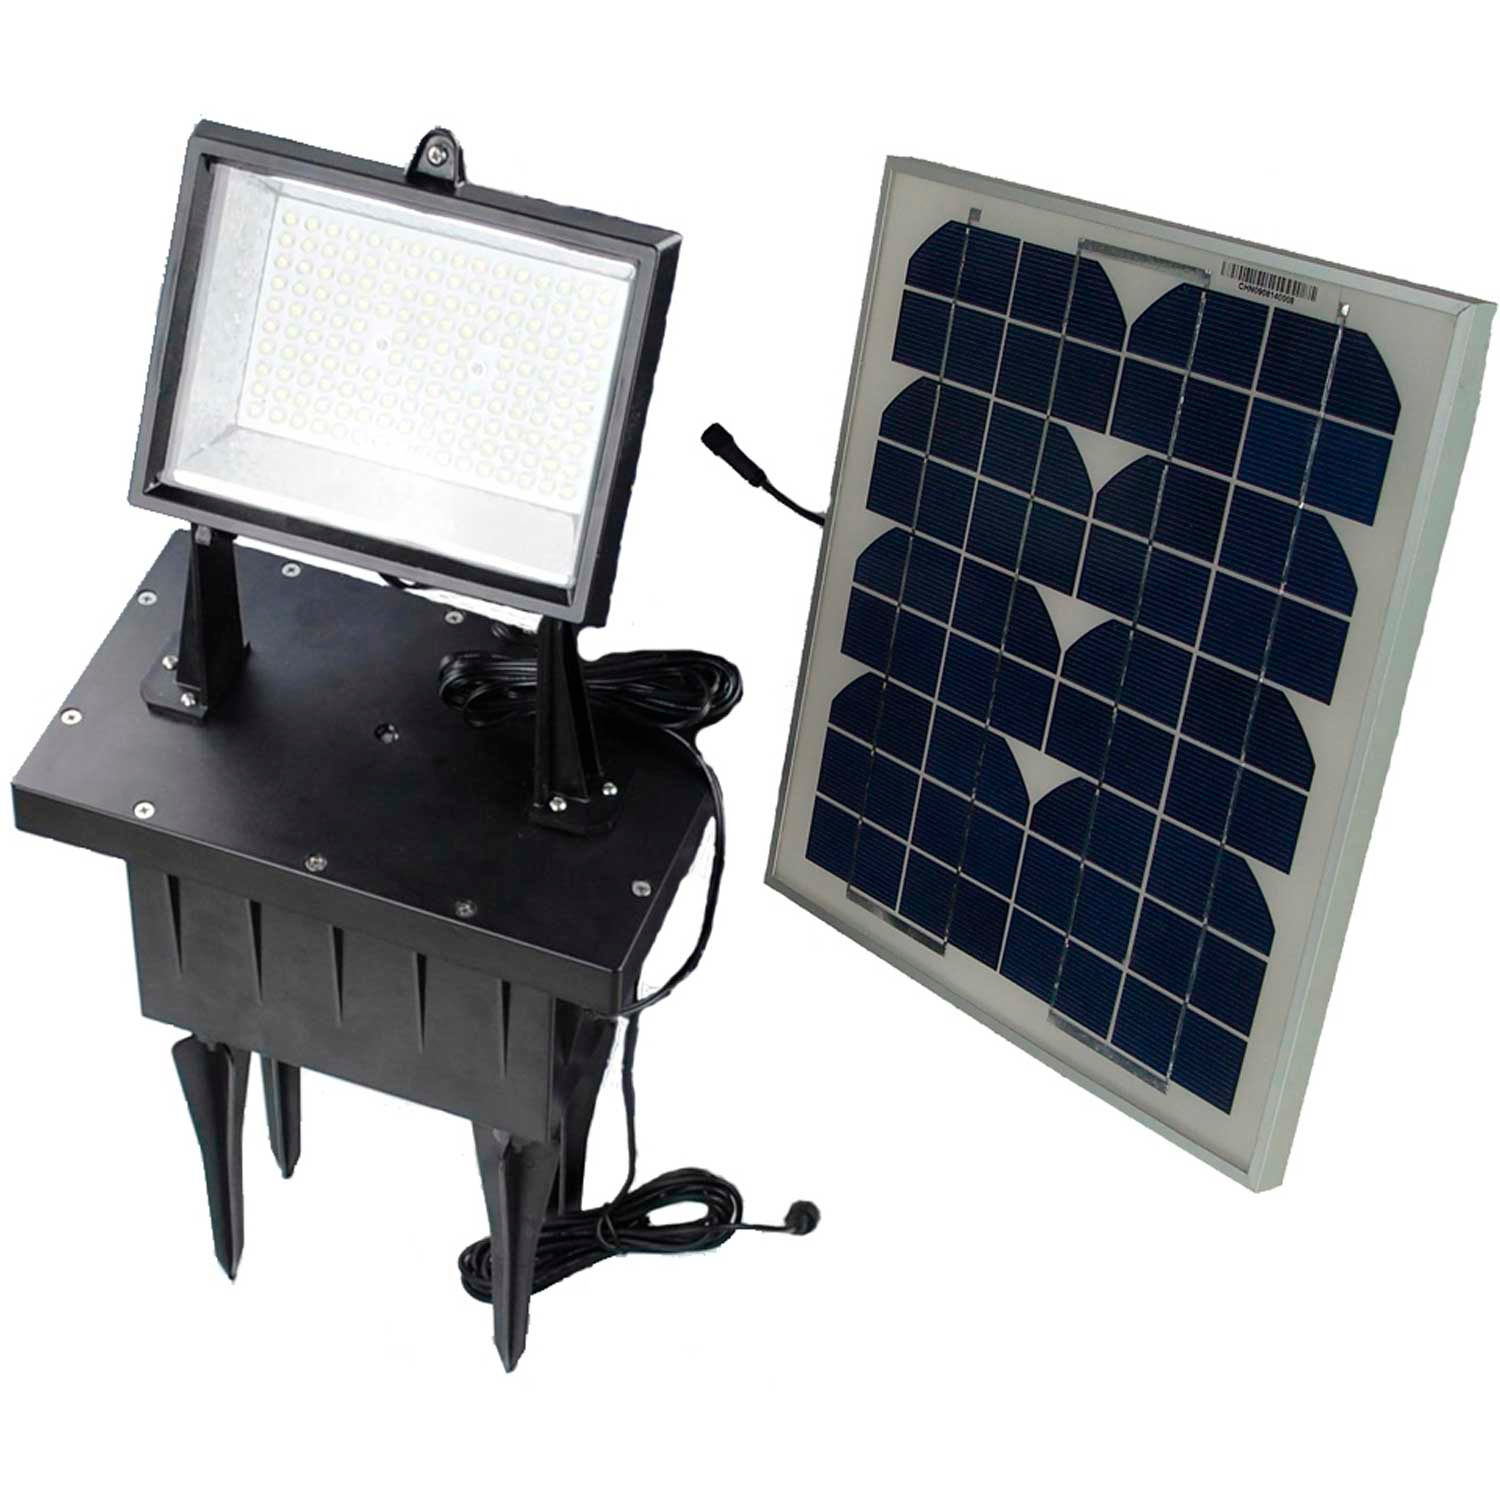 Solar Goes Green Sgg F108 3t